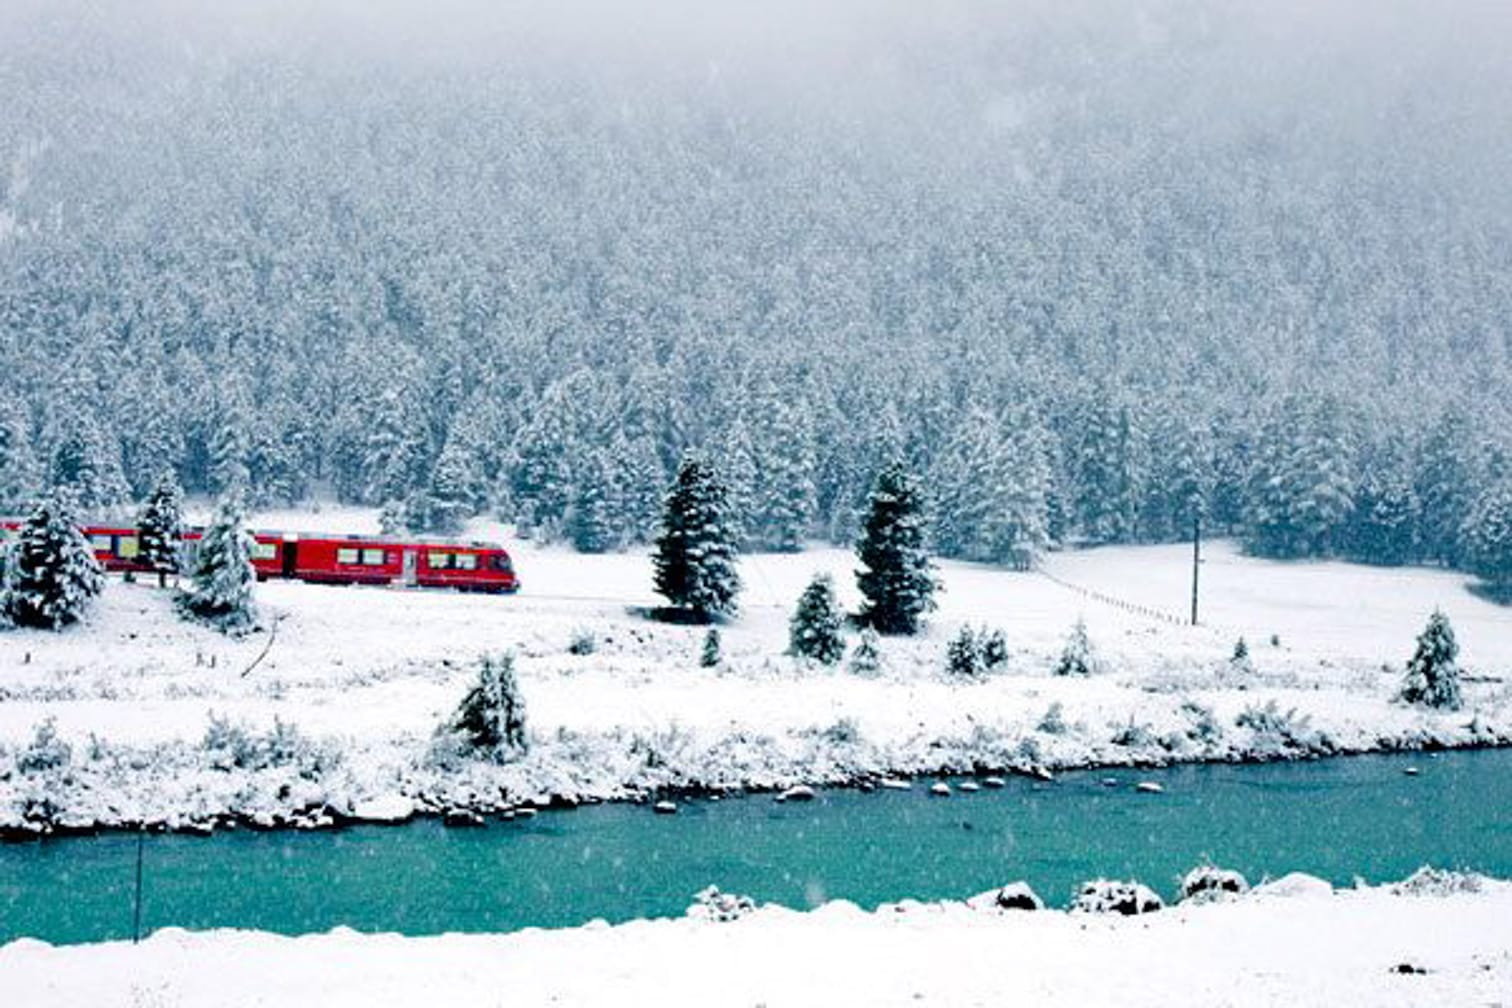 The Bernina Express, resplendent in its red livery, snakes through a snowy, Swiss landscape.